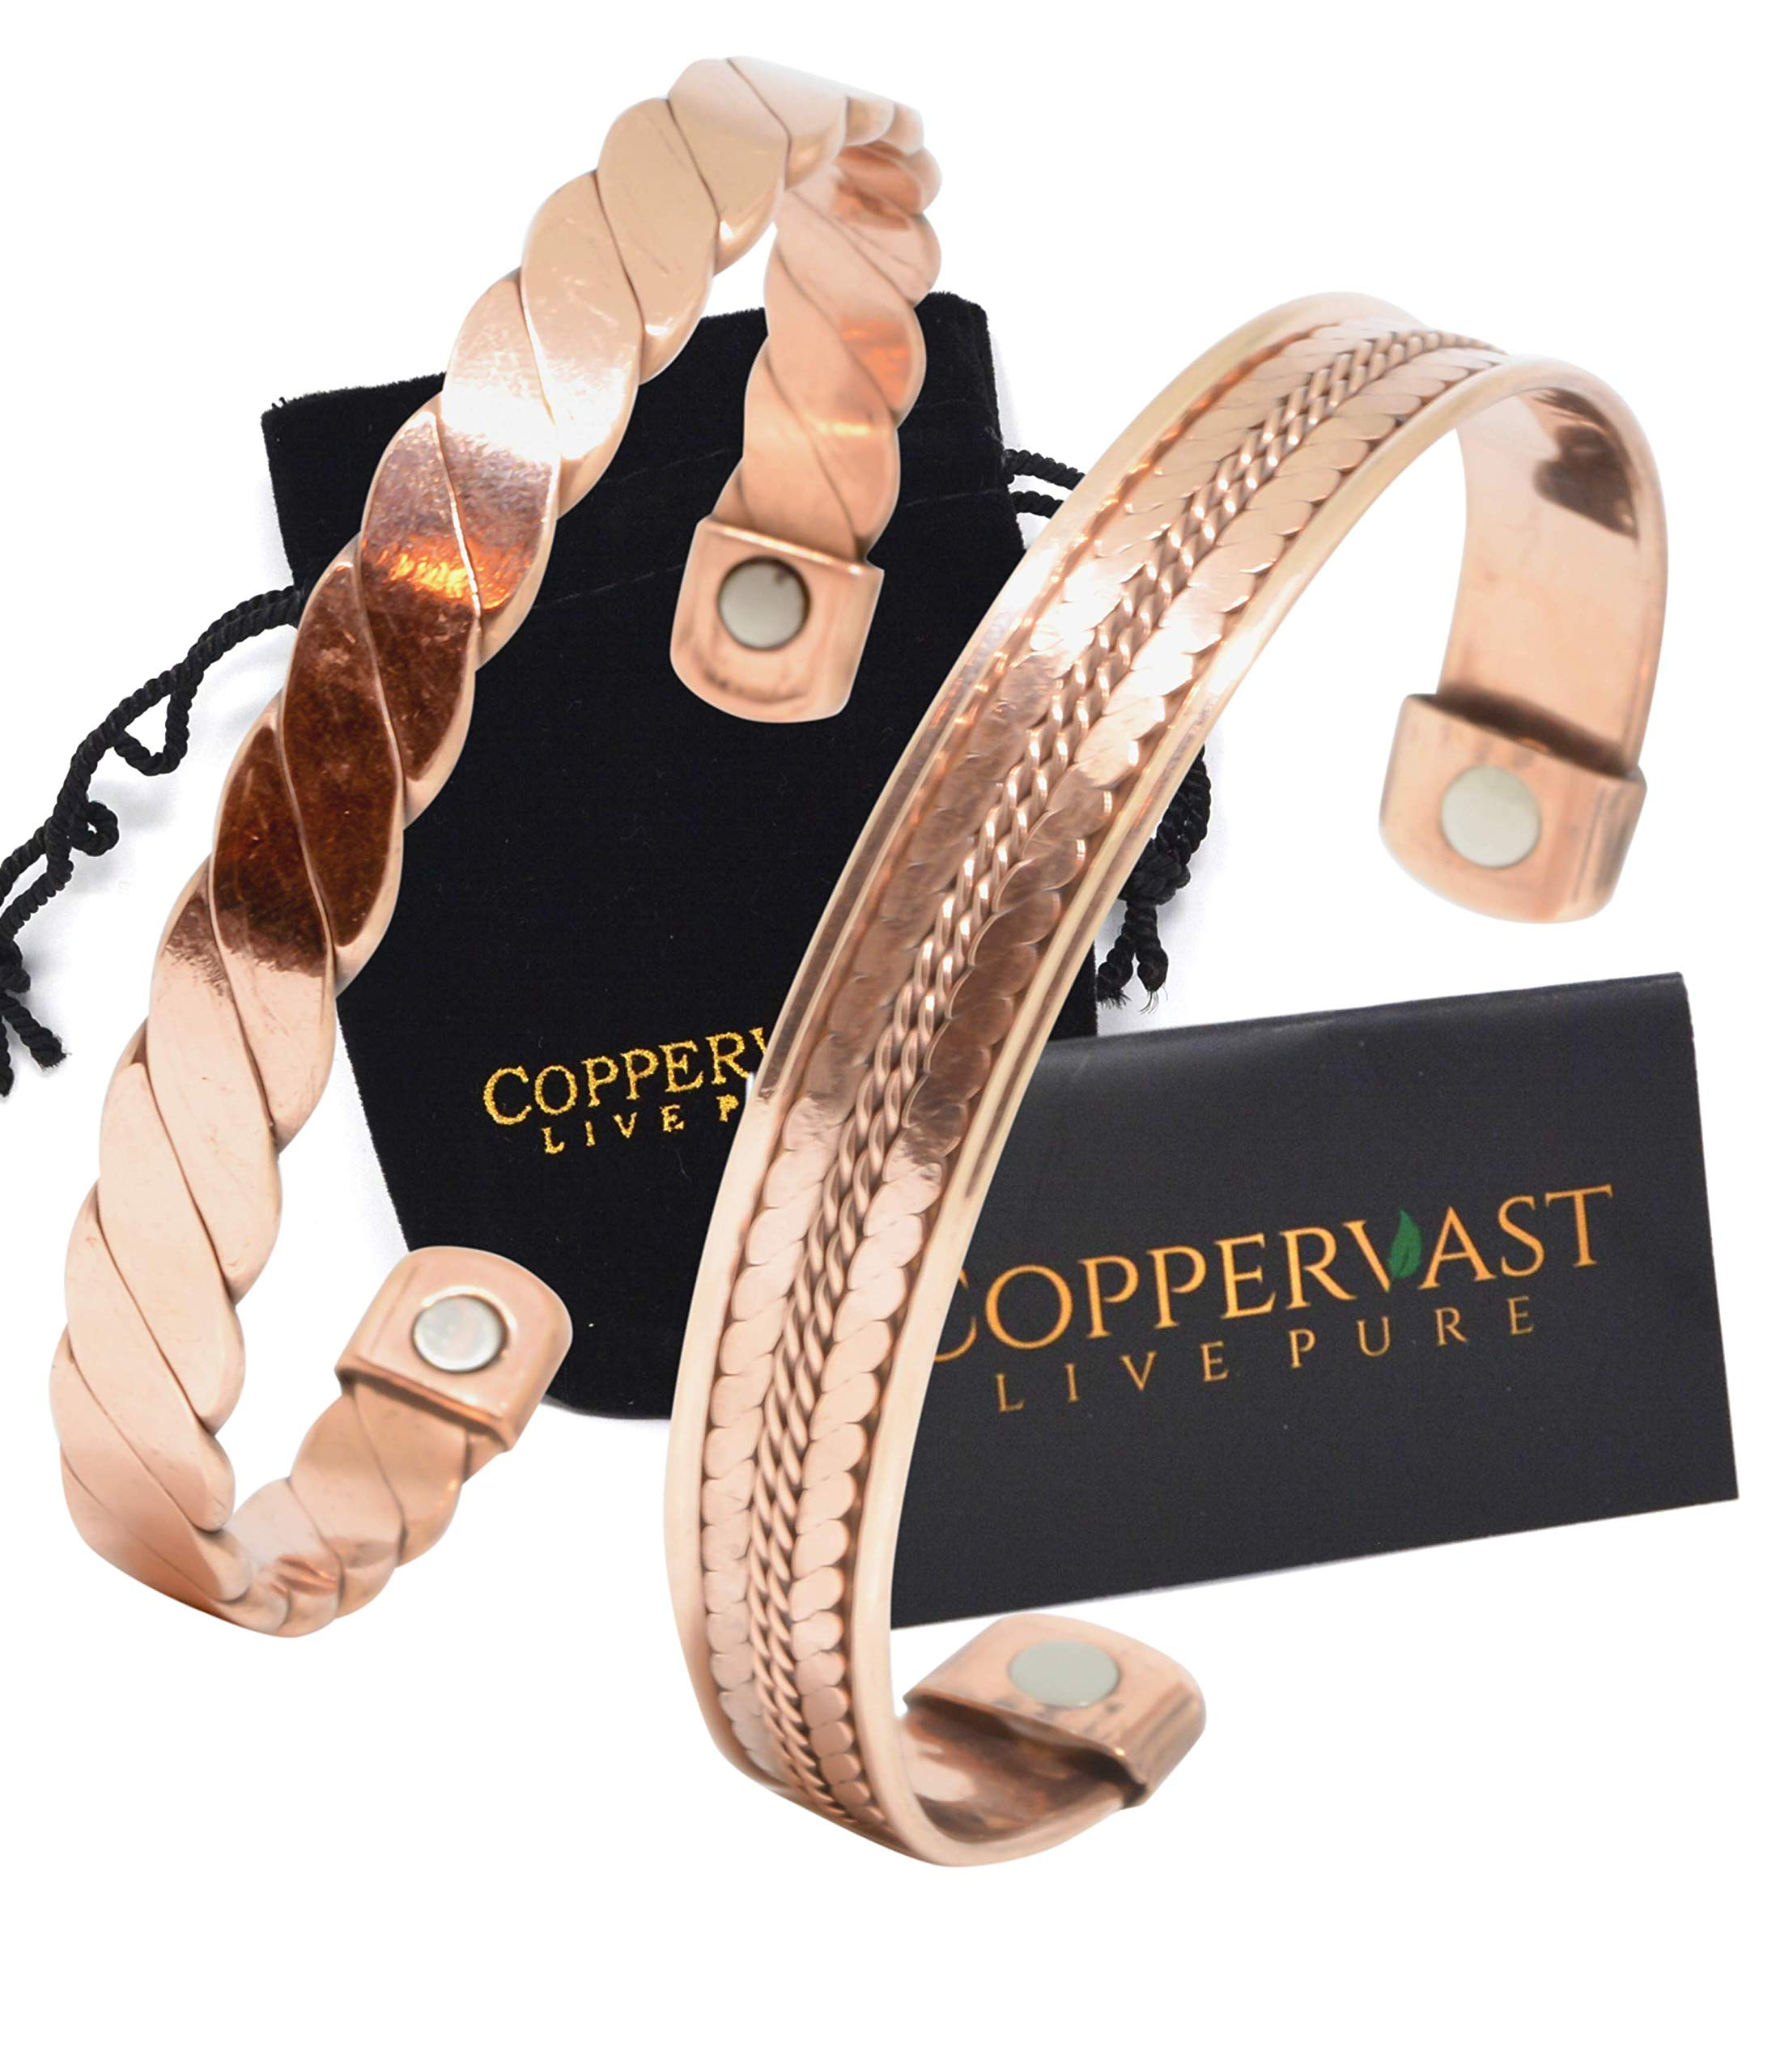 Copper Bracelets for Arthritis - Therapy Magnetic Bracelets for Men and Women with 2 Powerful Magnets - Effective and Natural Relief for Joint Pain and Arthritis Set of 2 (Twisted with Inlay) by Coppervast